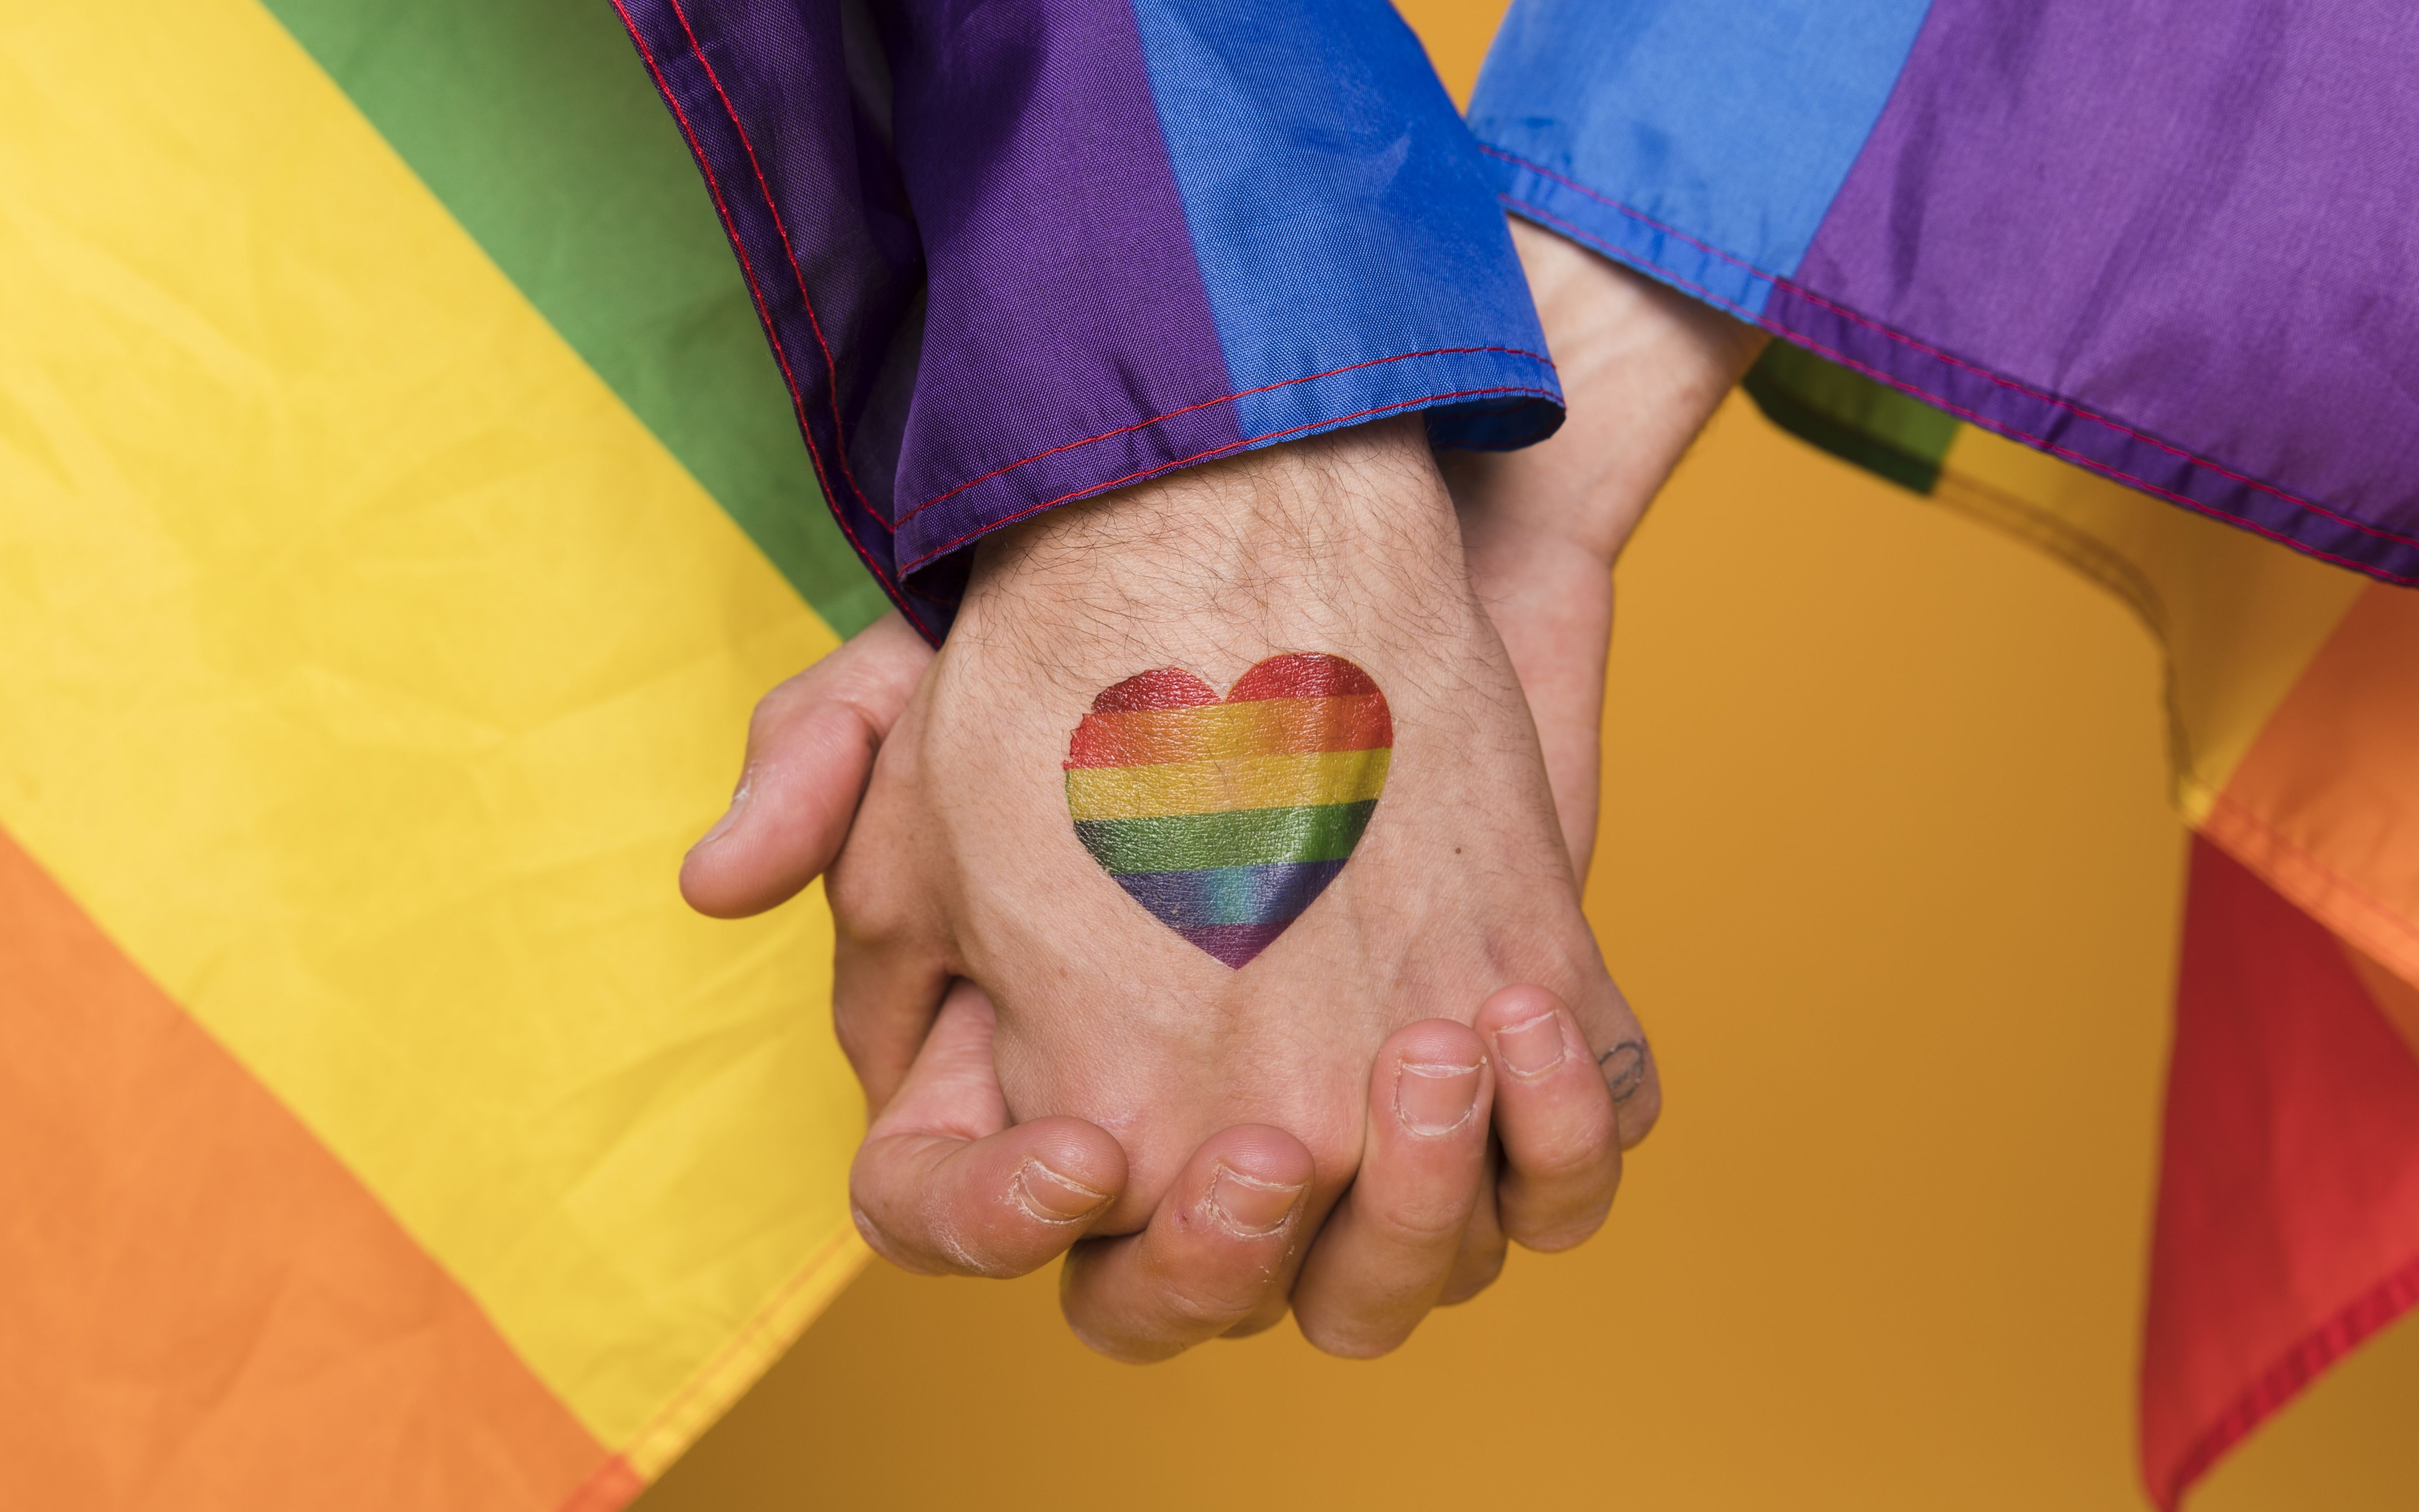 Gay married couple flee russia after receiving death threats